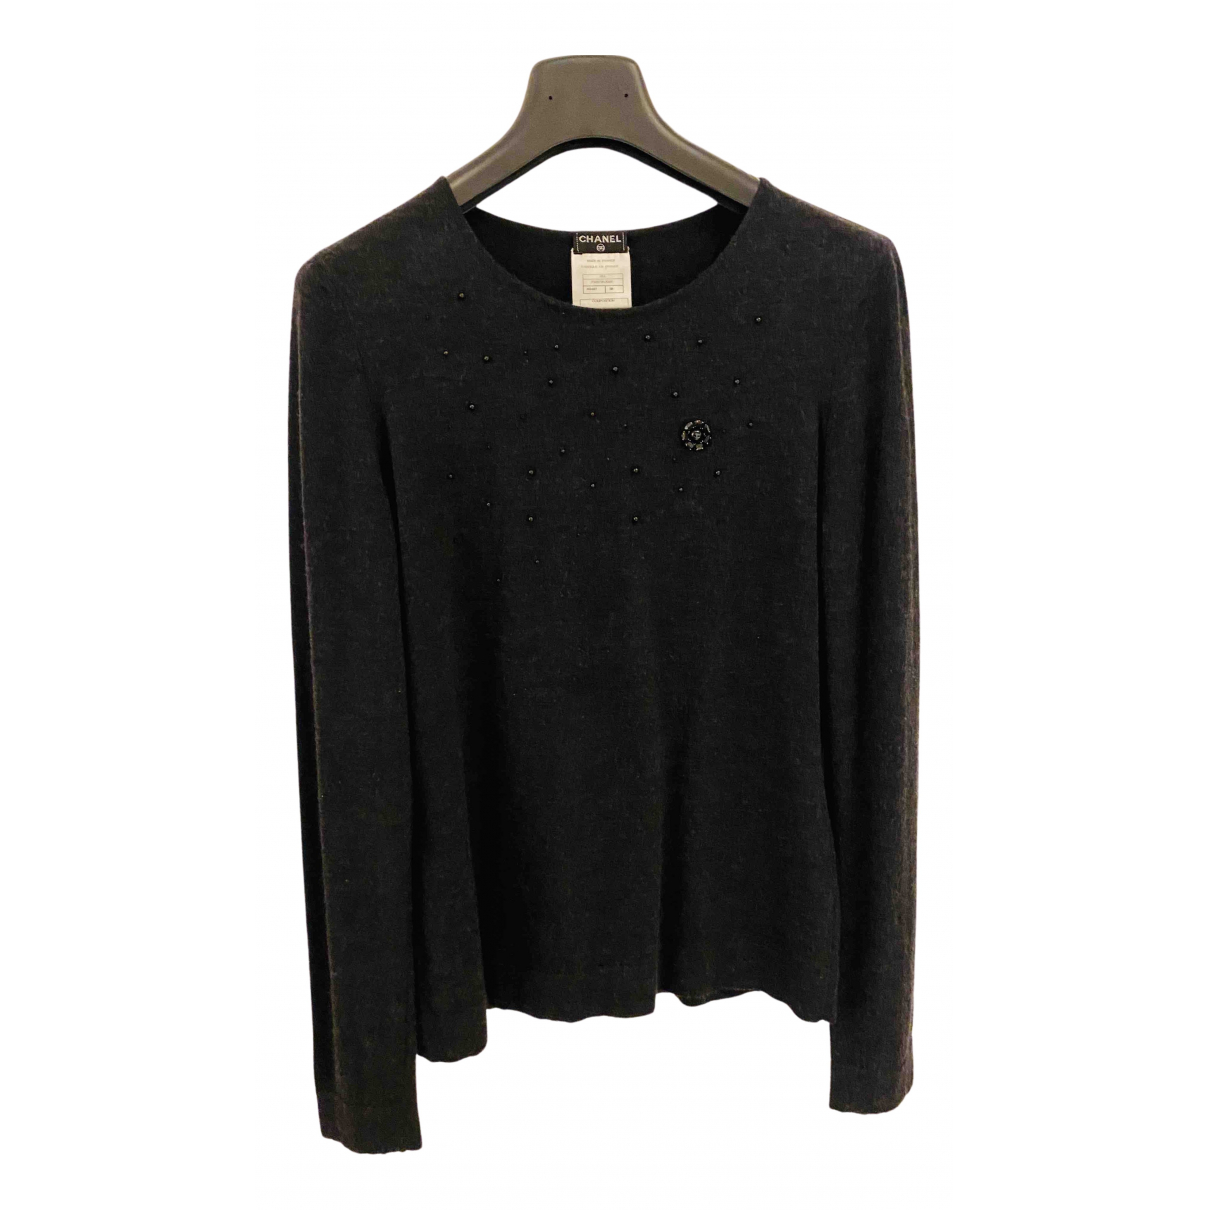 Chanel N Anthracite Wool Knitwear for Women 38 FR